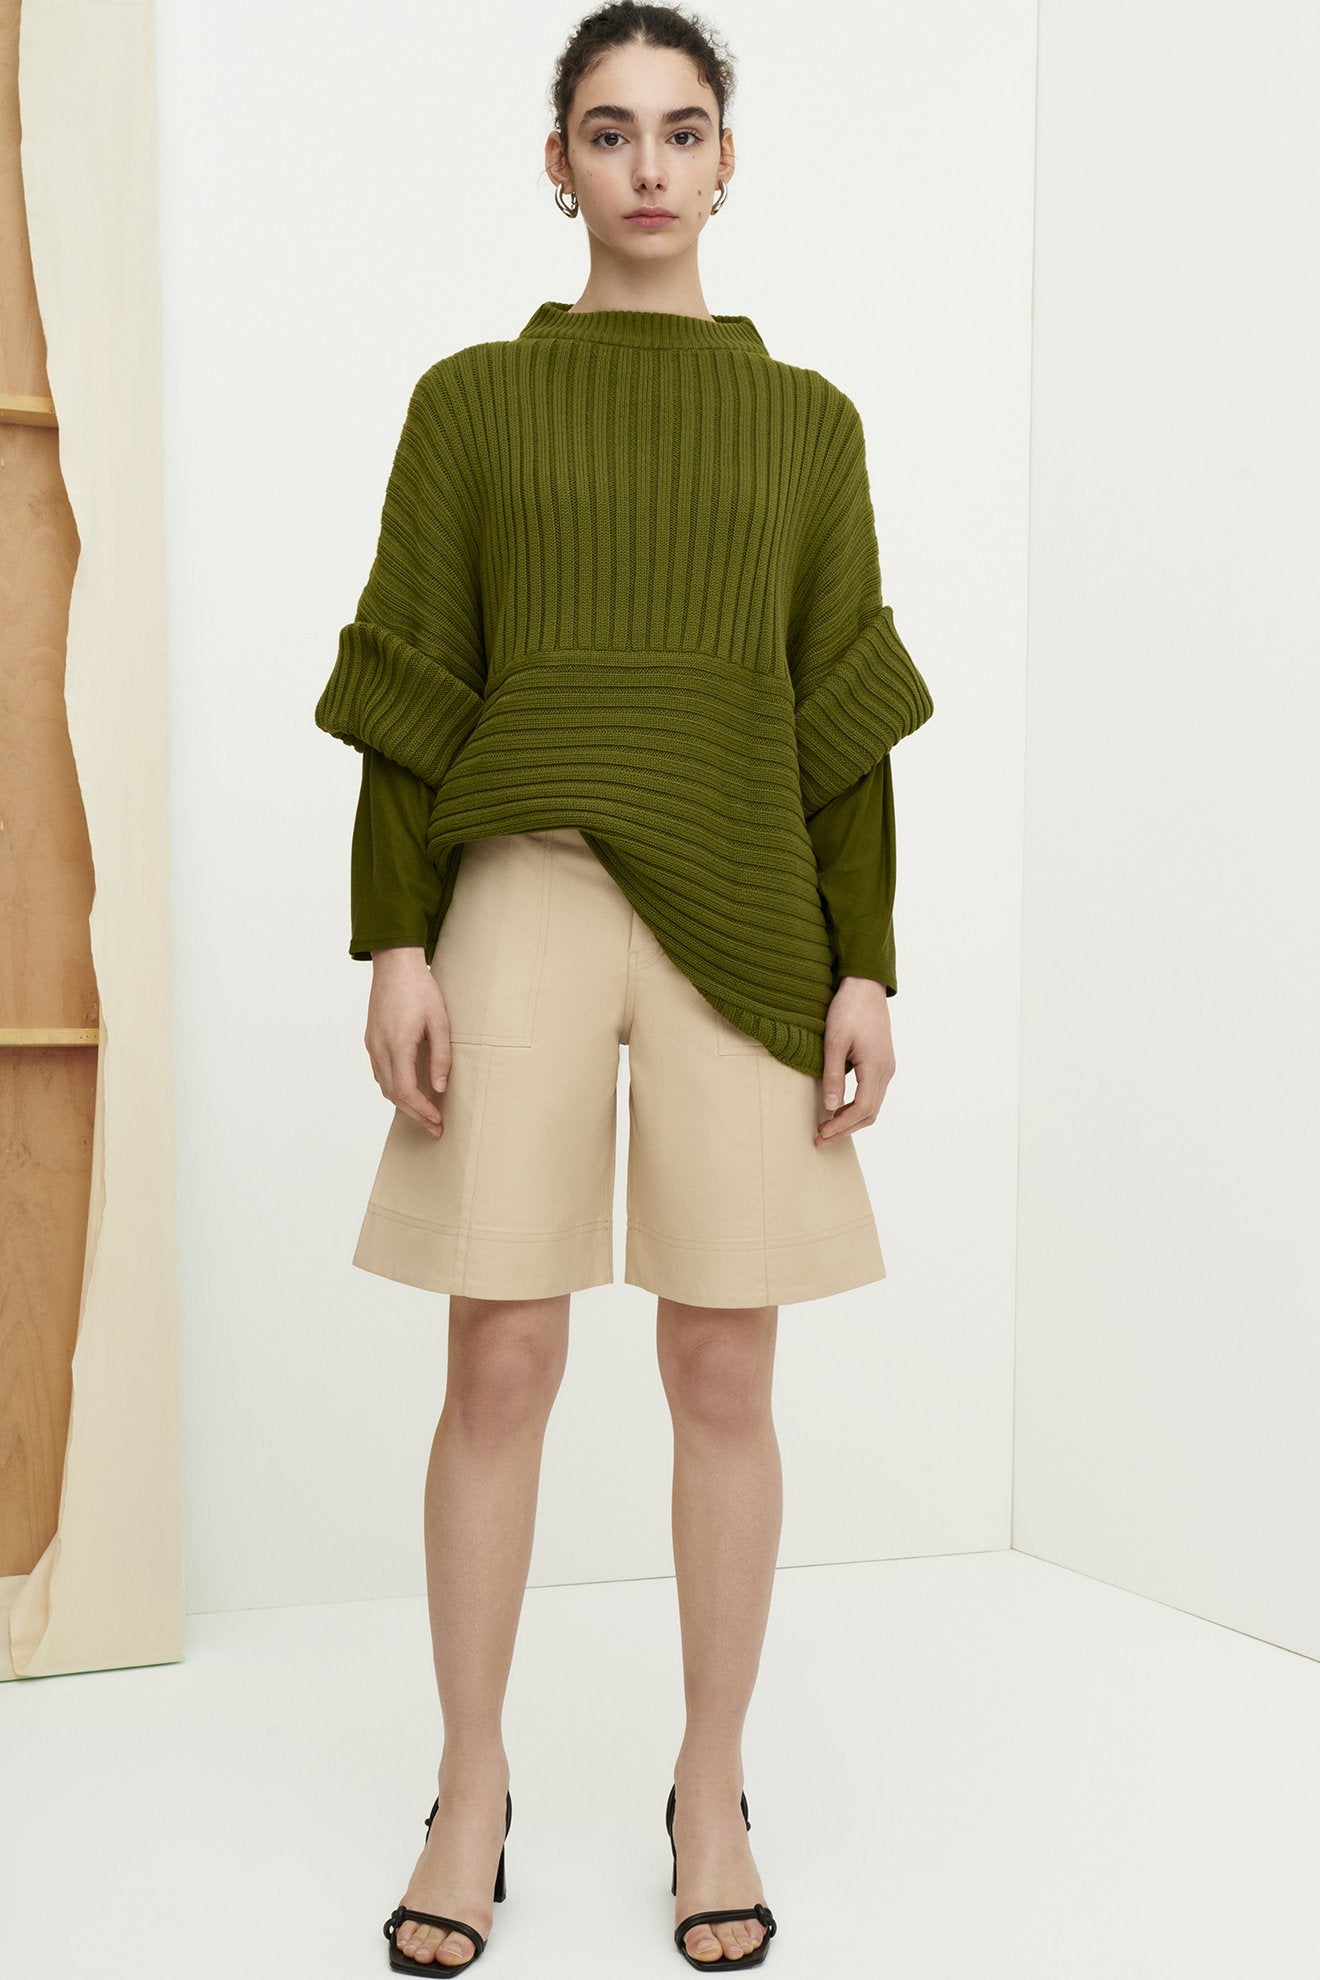 Kowtow Direction Sweater in Willow. Available at EASE Toronto.